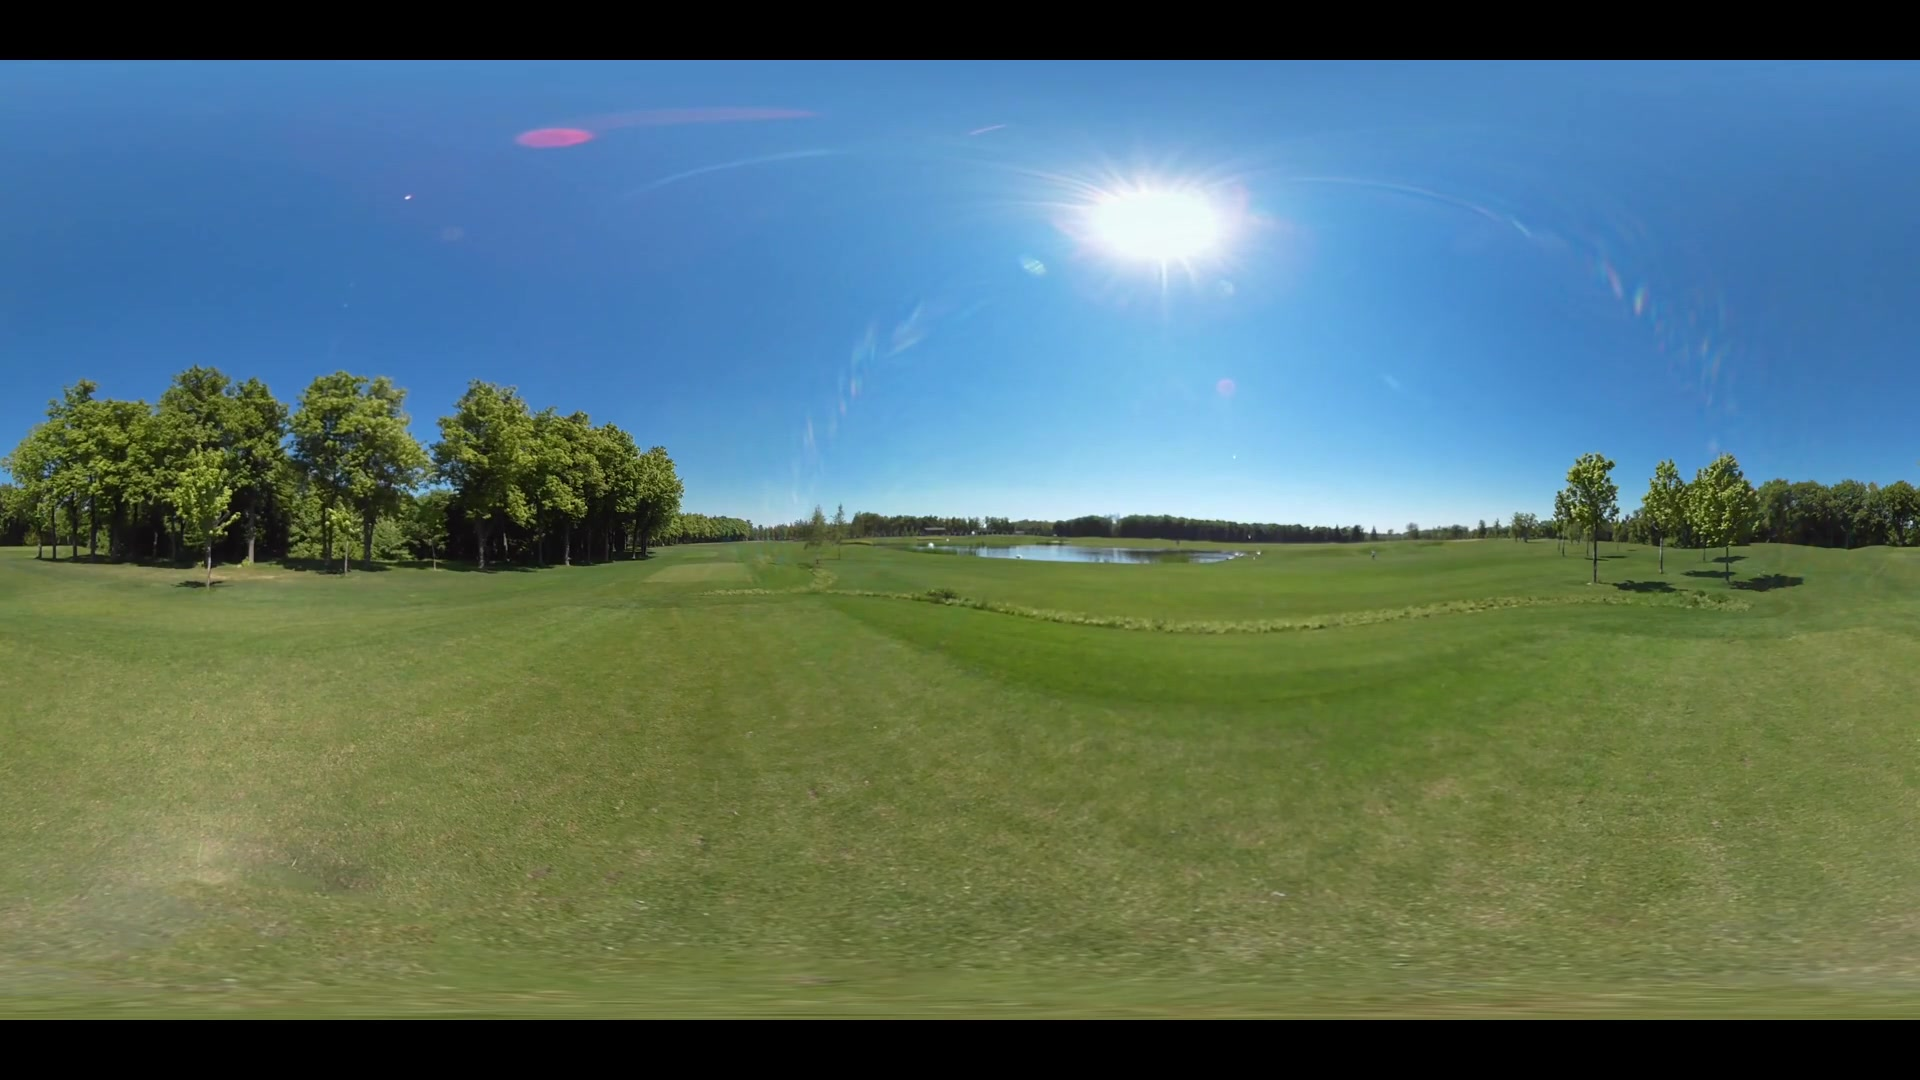 360 panorama of green meadow grass. Green grass field blue sky 360 view. Green lawn grass golf field 360 degree panorama. Lake on green lawn landscape